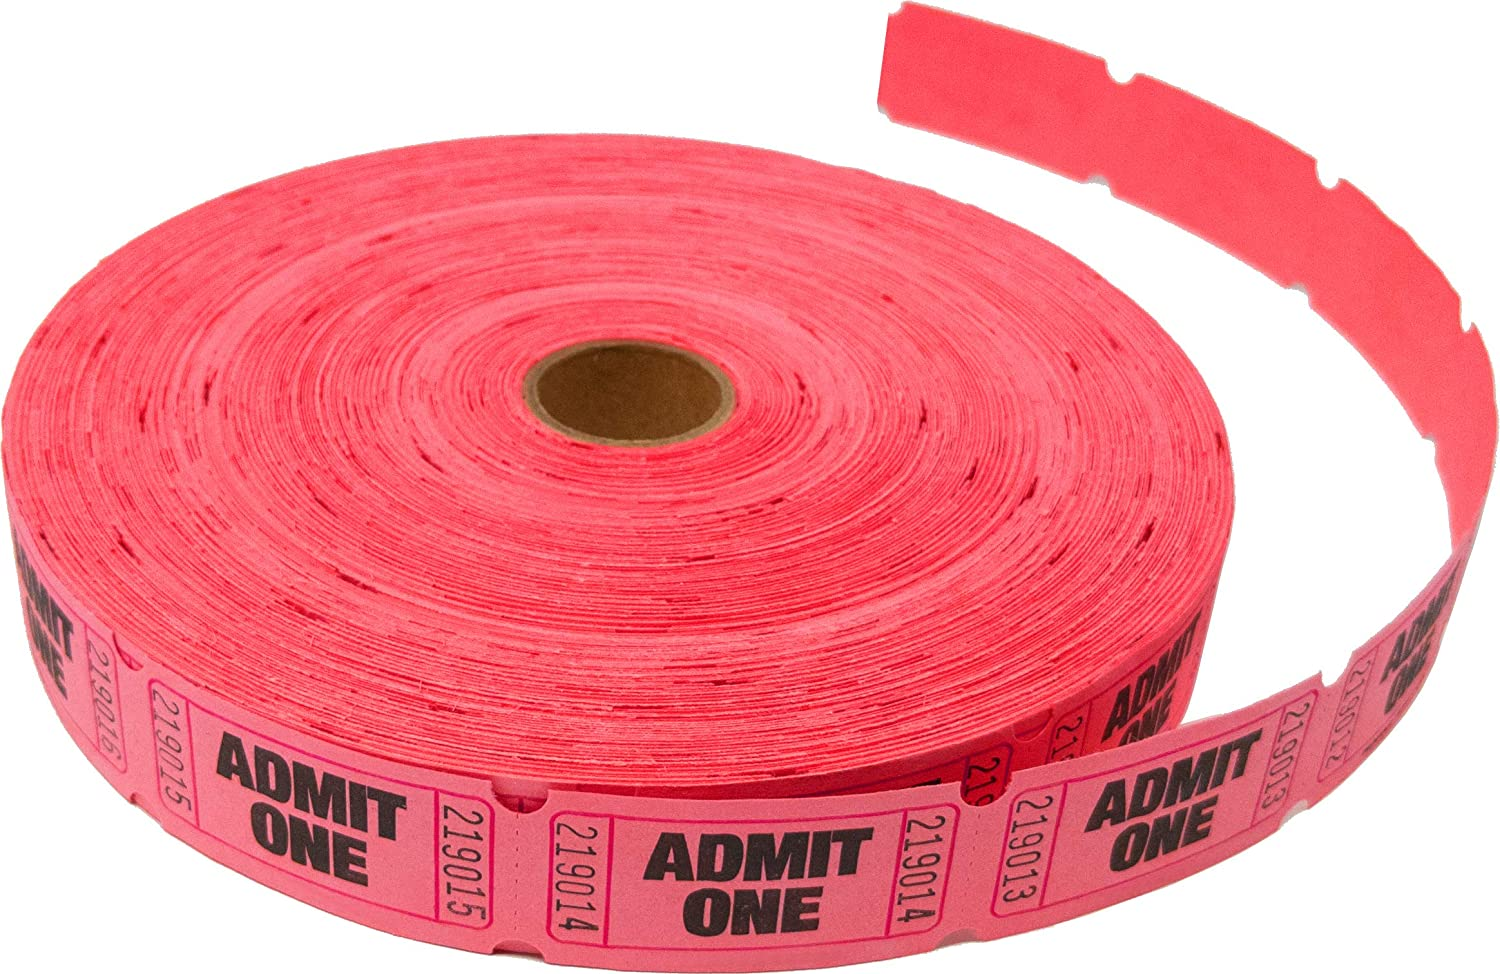 Tacticai 2000 Red Raffle Tickets (8 Colors Available) for Events, Entry, Class Reward, Fundraiser & Prizes (Single Roll - 2